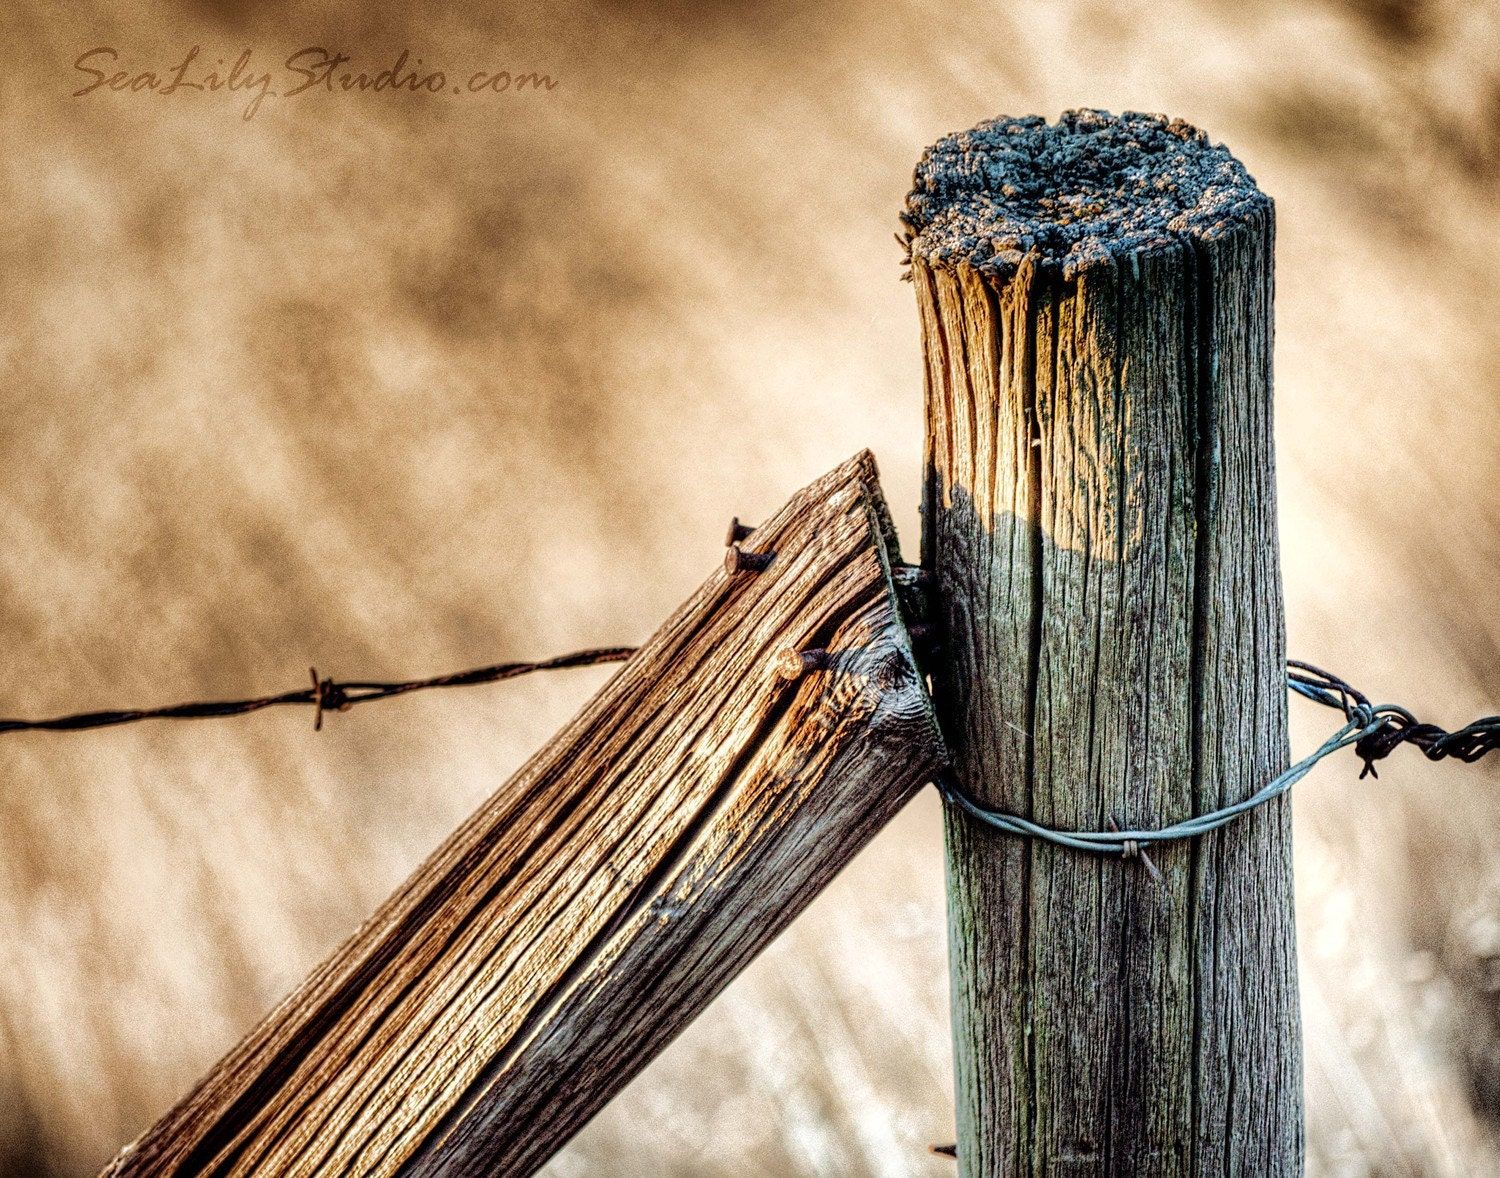 Fence Post : rustic photography wood rusty nail barbed wire